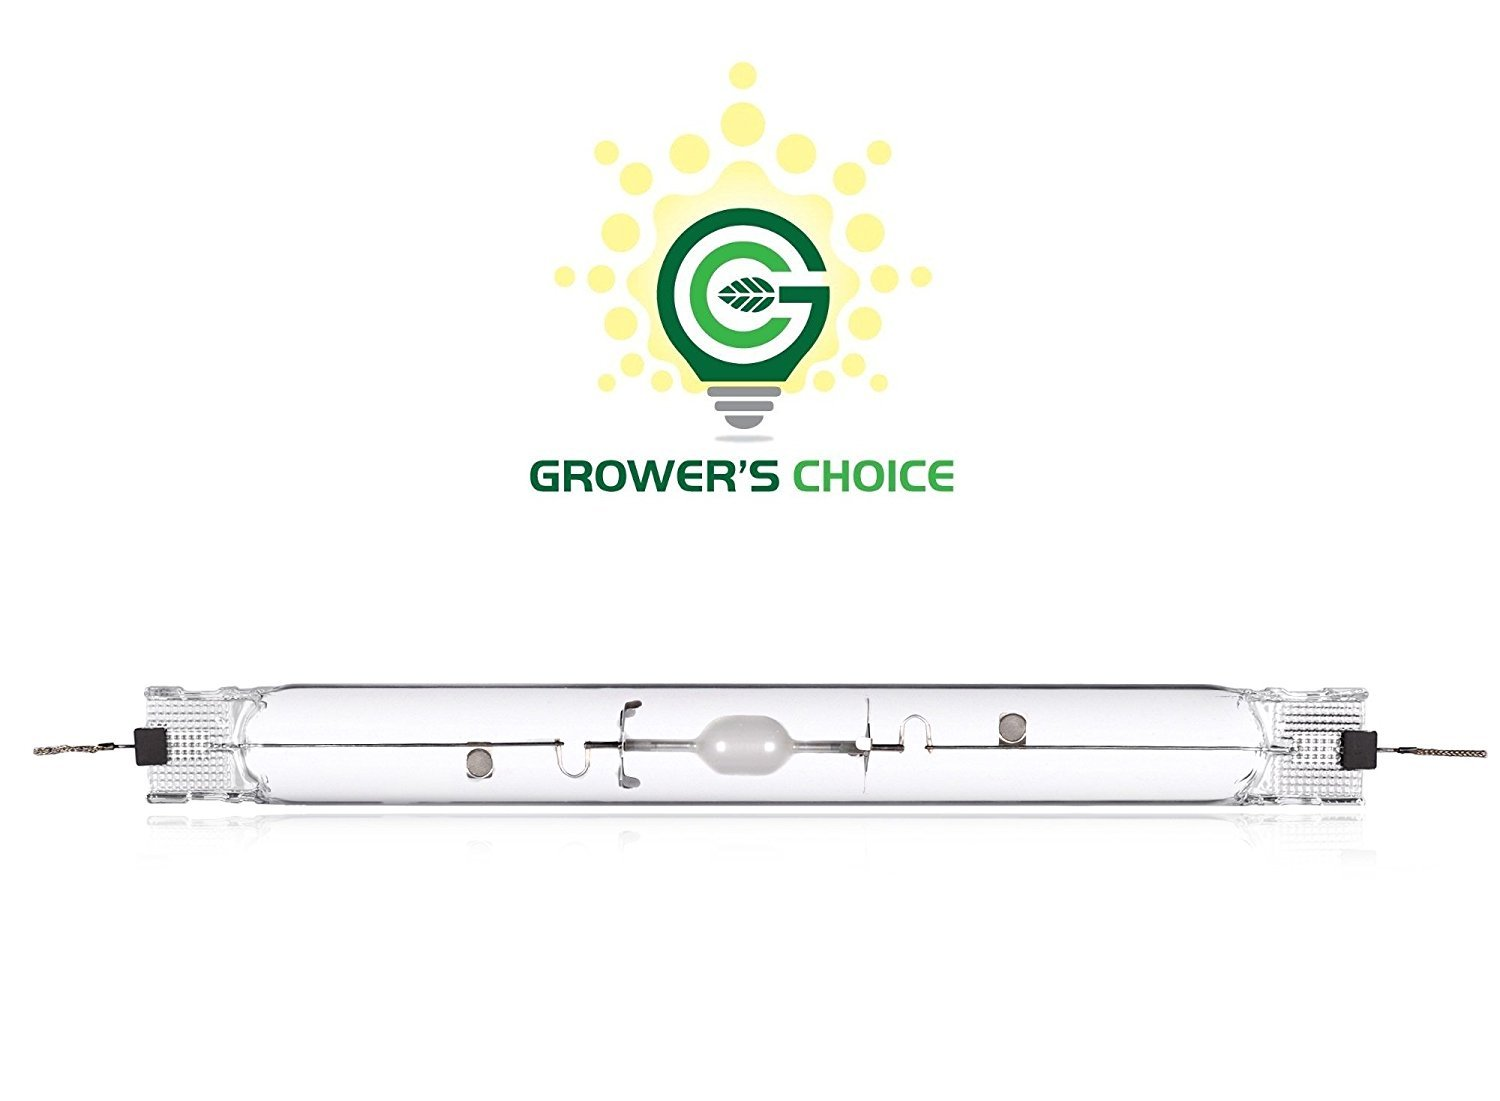 Grower's Choice 315W Double Ended Ceramic Metal Halide DE CMH Grow Light Lamp Bulb (4K)